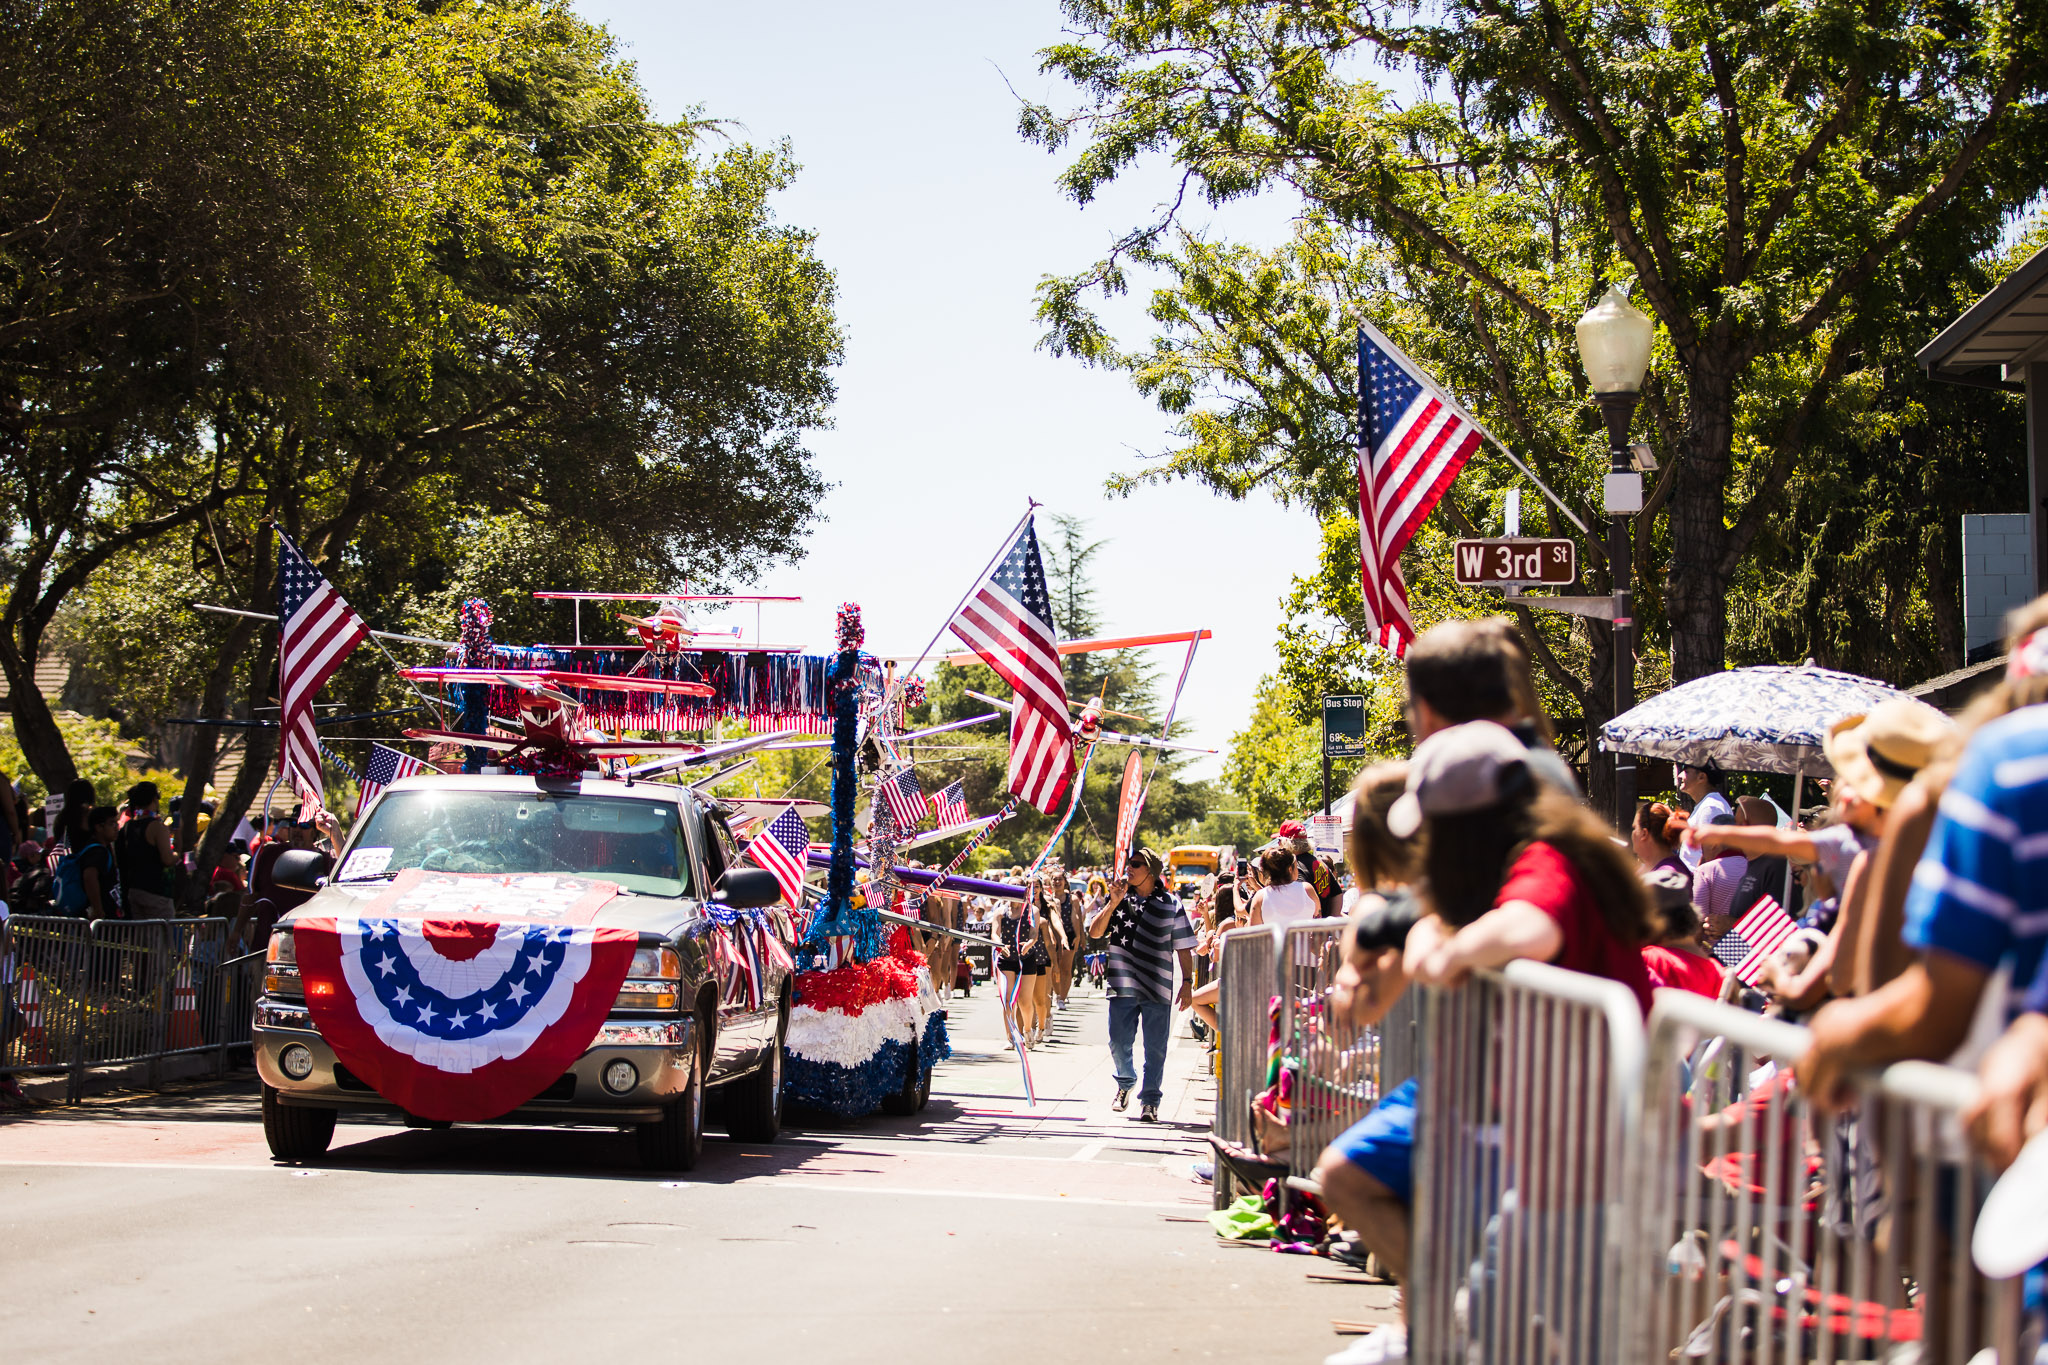 Archer_Inspired_Photography_Morgan_Hill_California_4th_of_july_parade-170.jpg